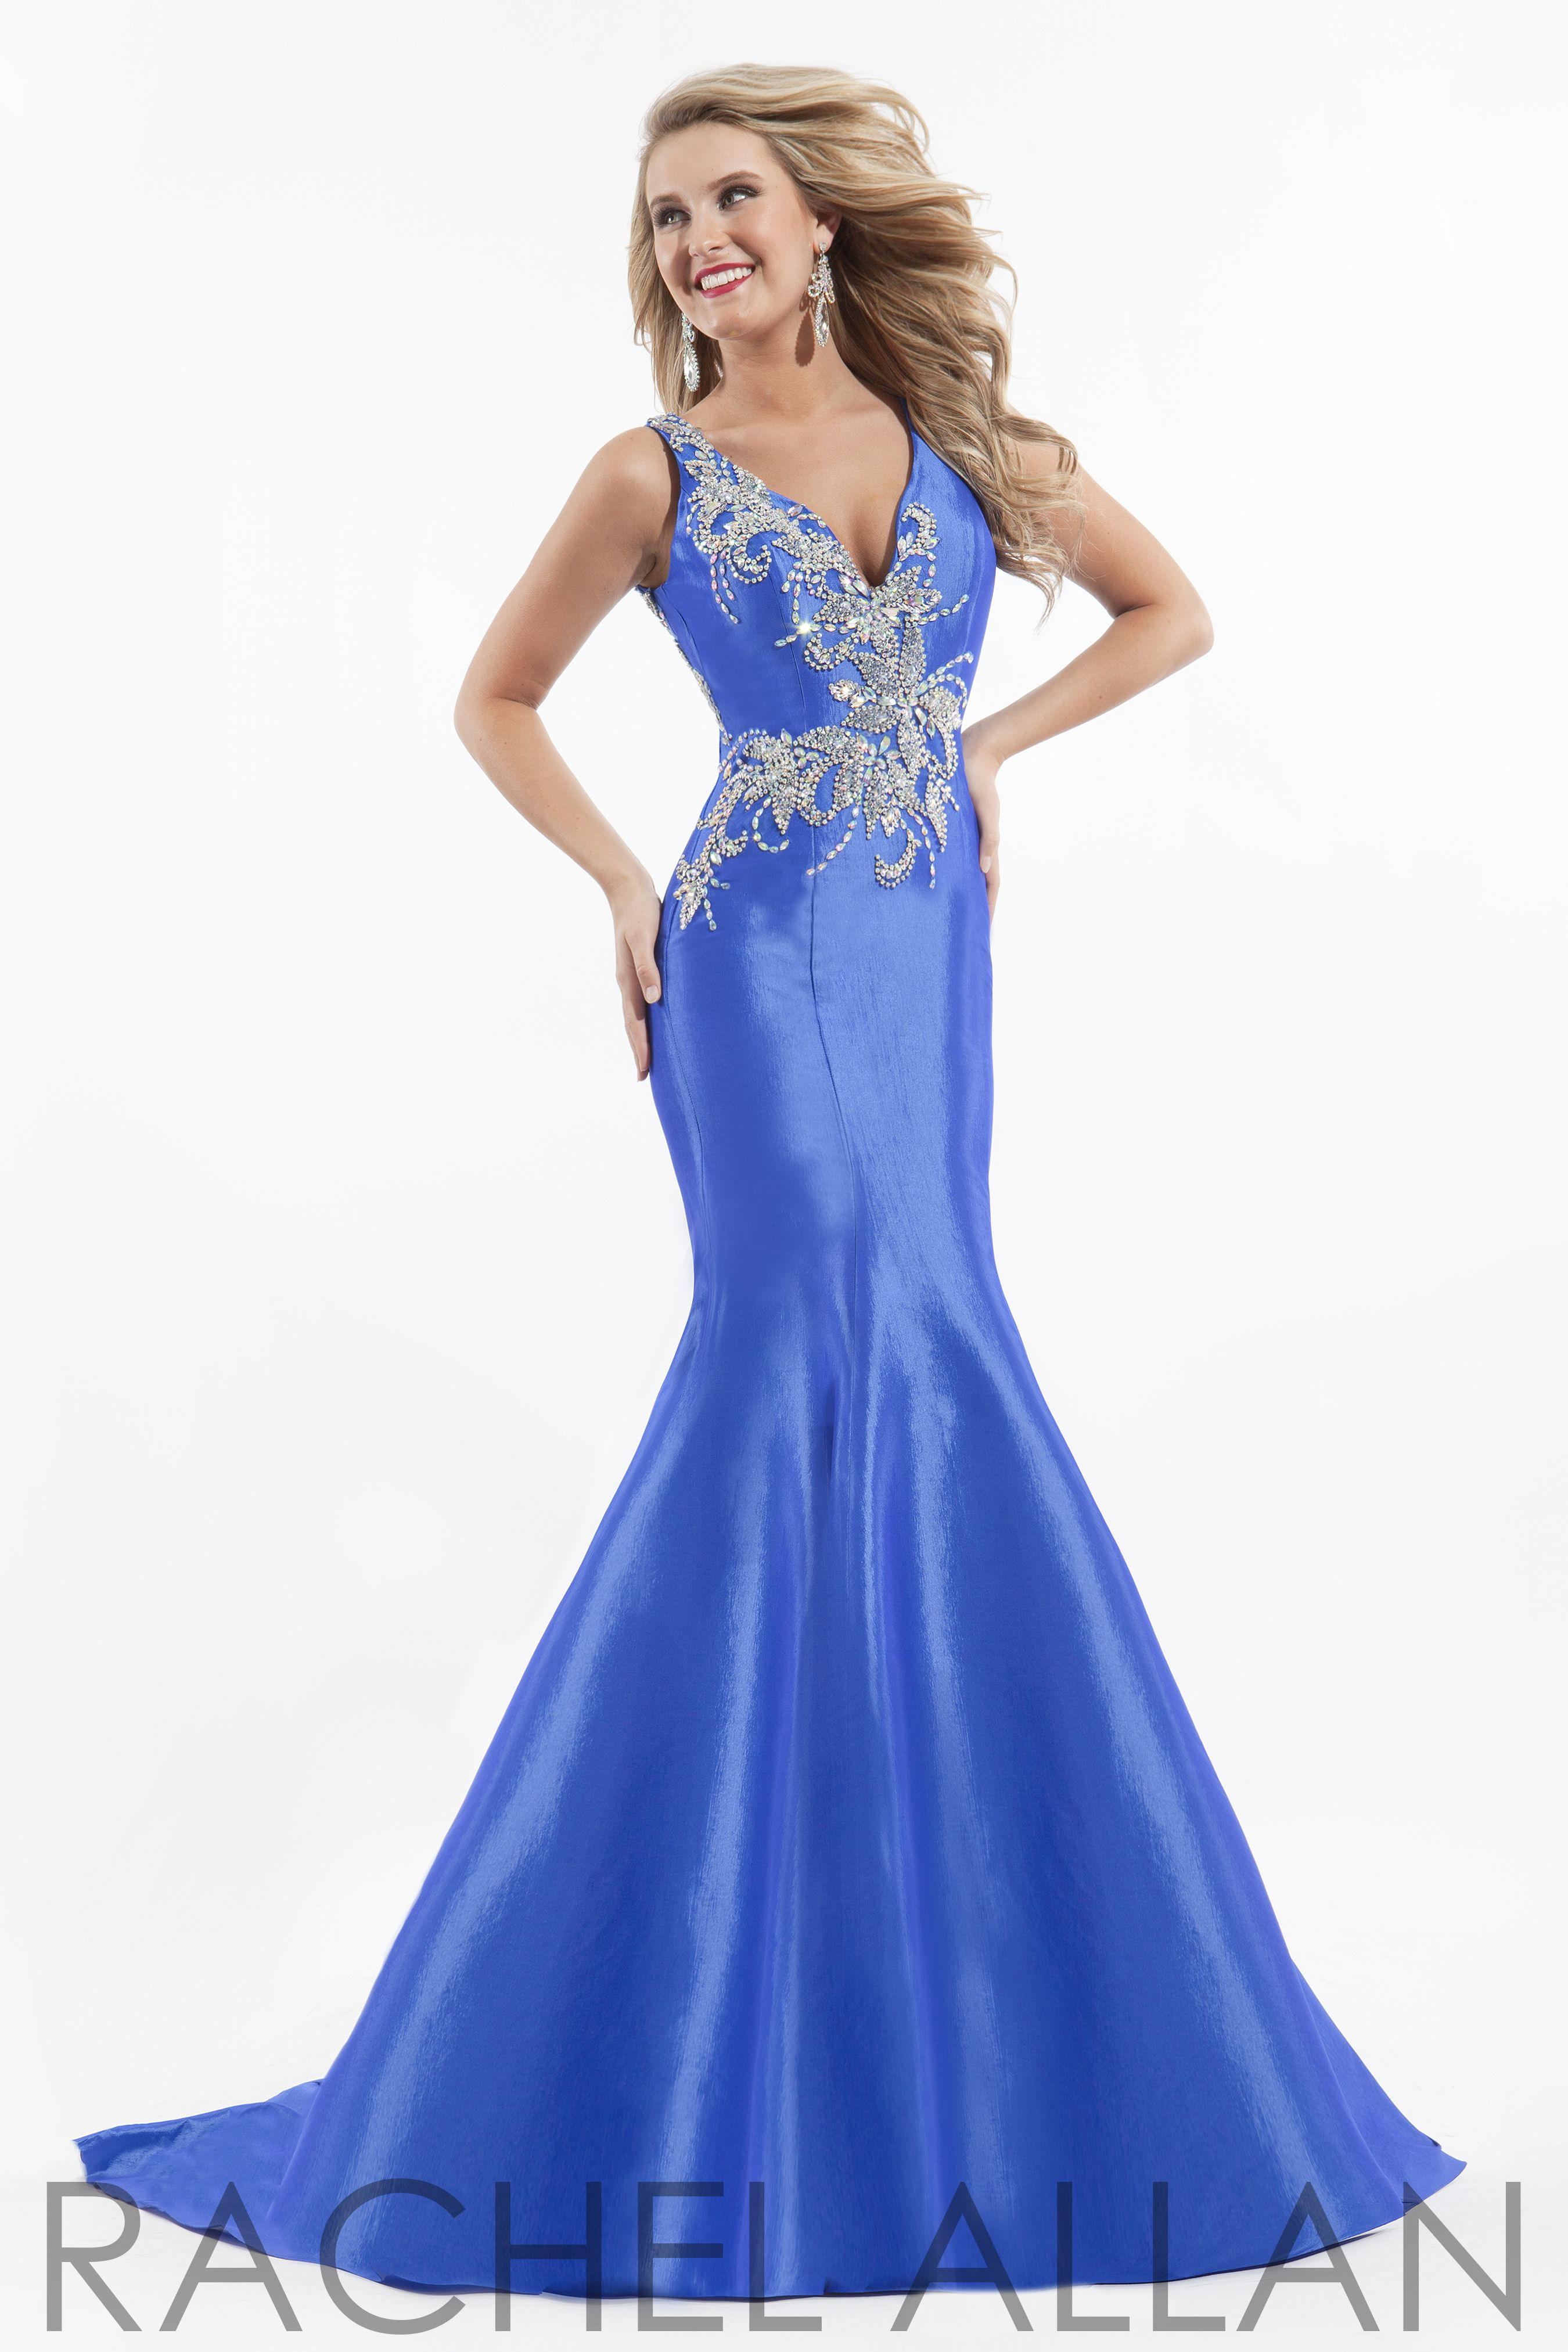 Rachel allan party time formals pinterest concert dresses